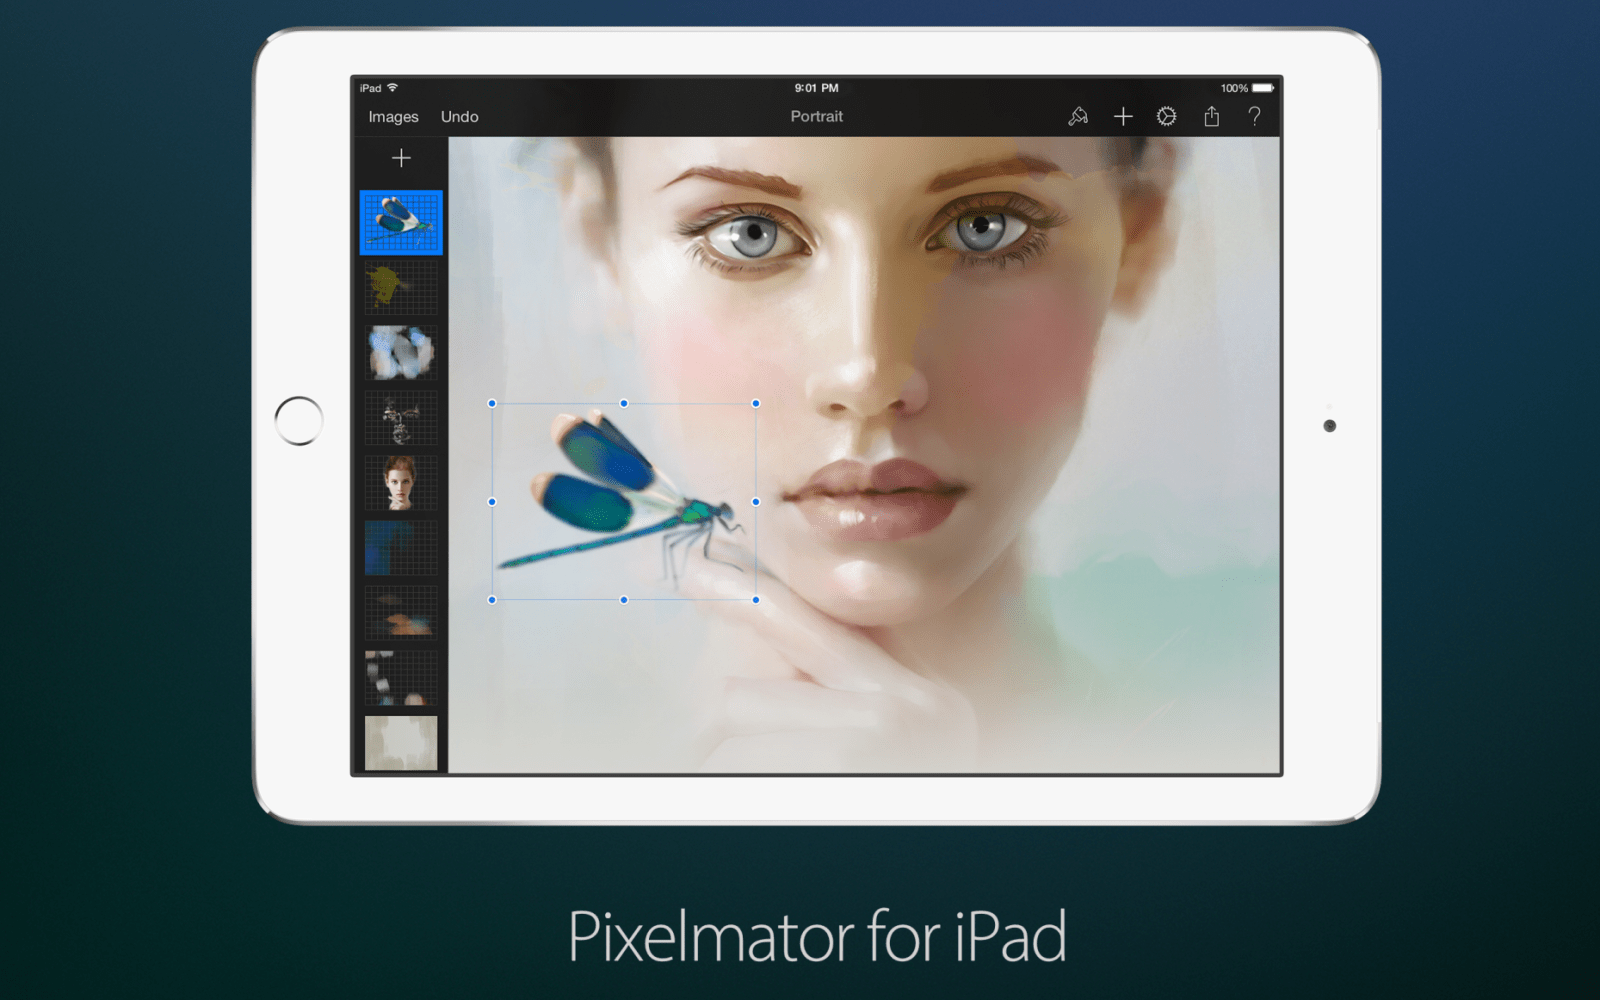 Pixelmator for iPhone and iPad adds 'Dynamic Touch' brush strokes, better Repair Tool, more